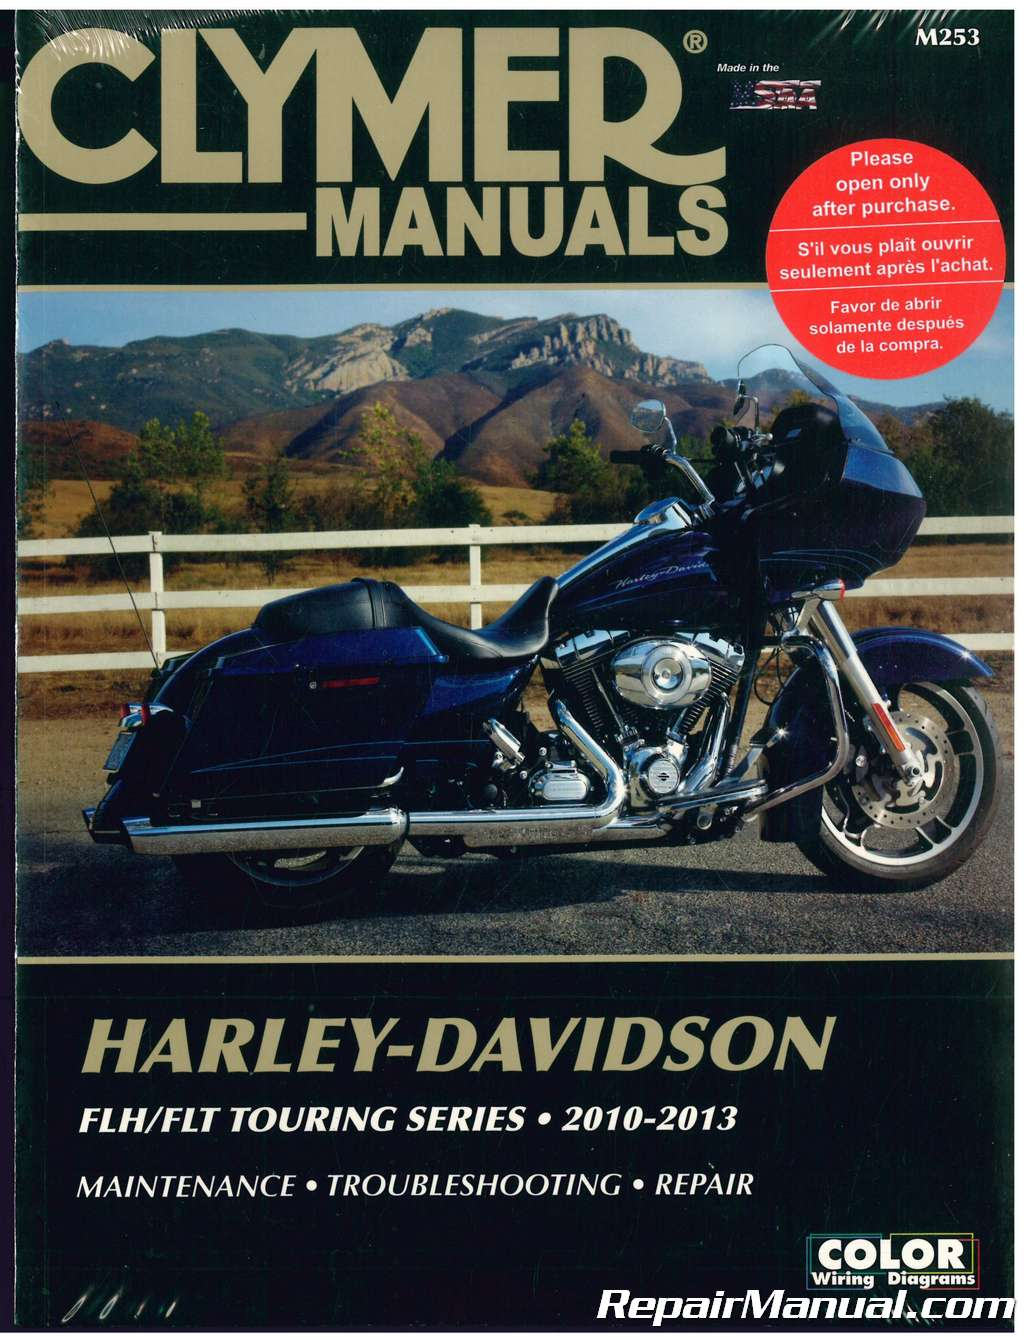 Clymer Harley-Davidson FLH/FLT Touring Series 2010-2013 Motorcycle Repair  Manual